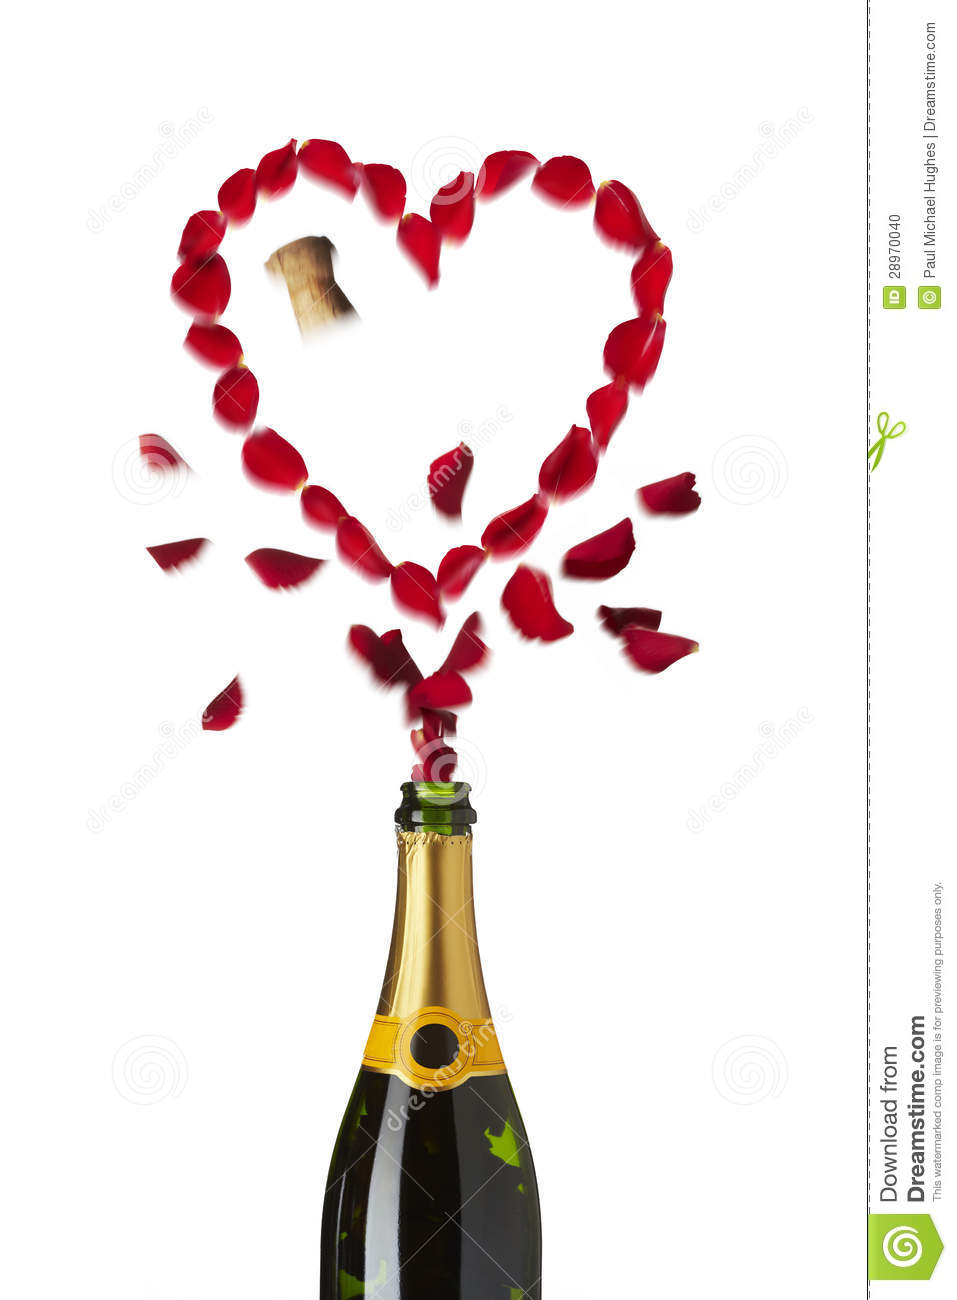 Heart shaped red rose petals champagne bottle